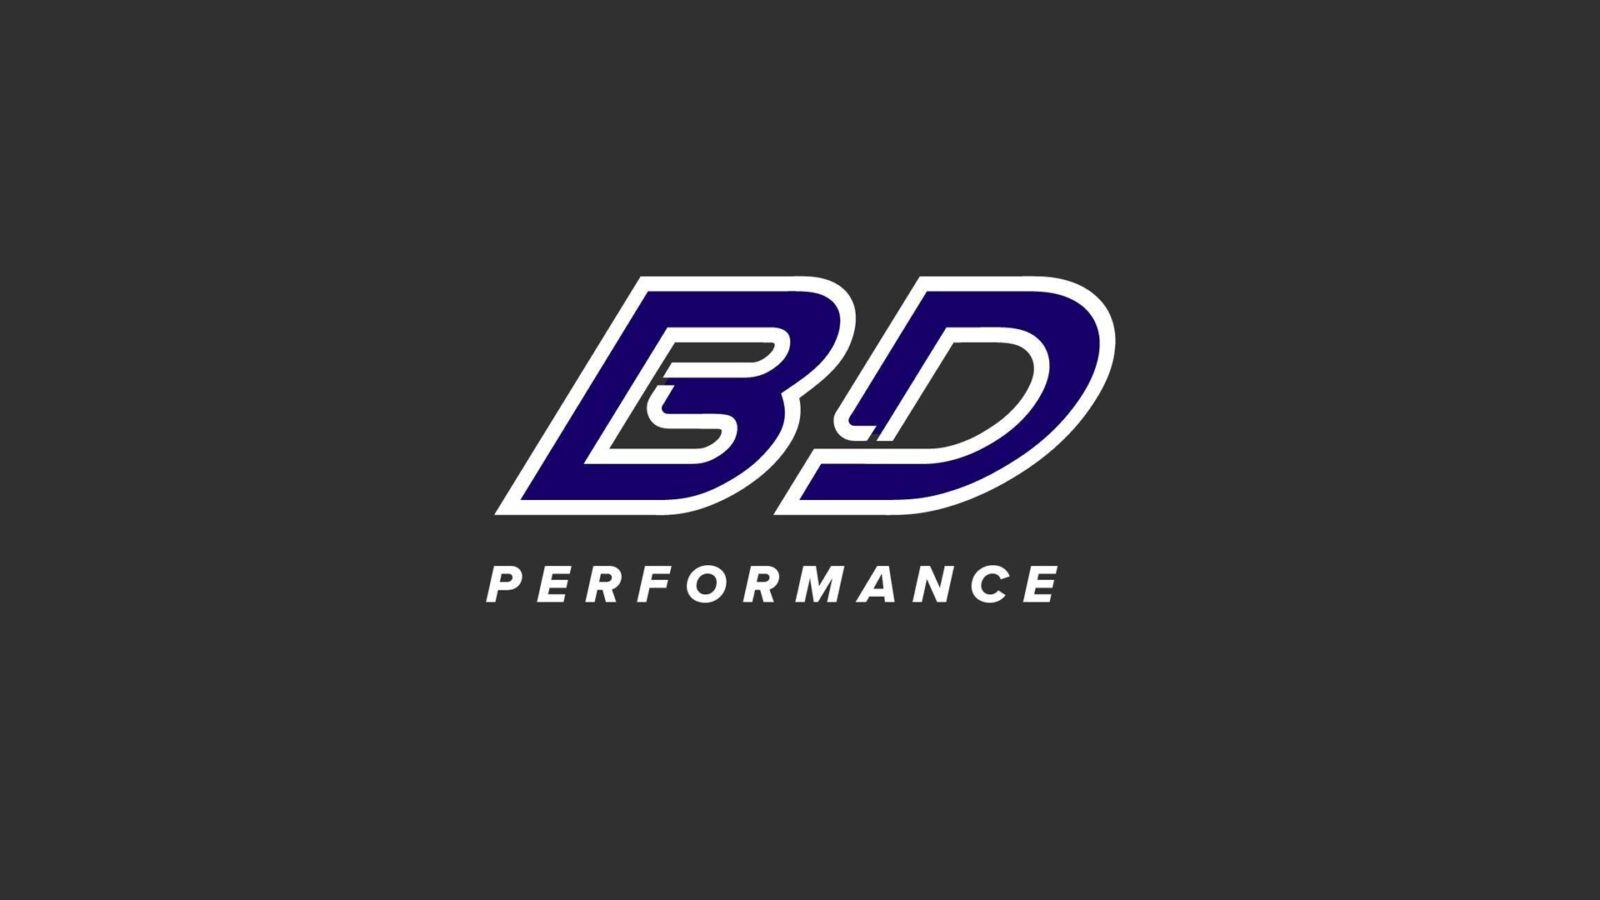 BD Performance